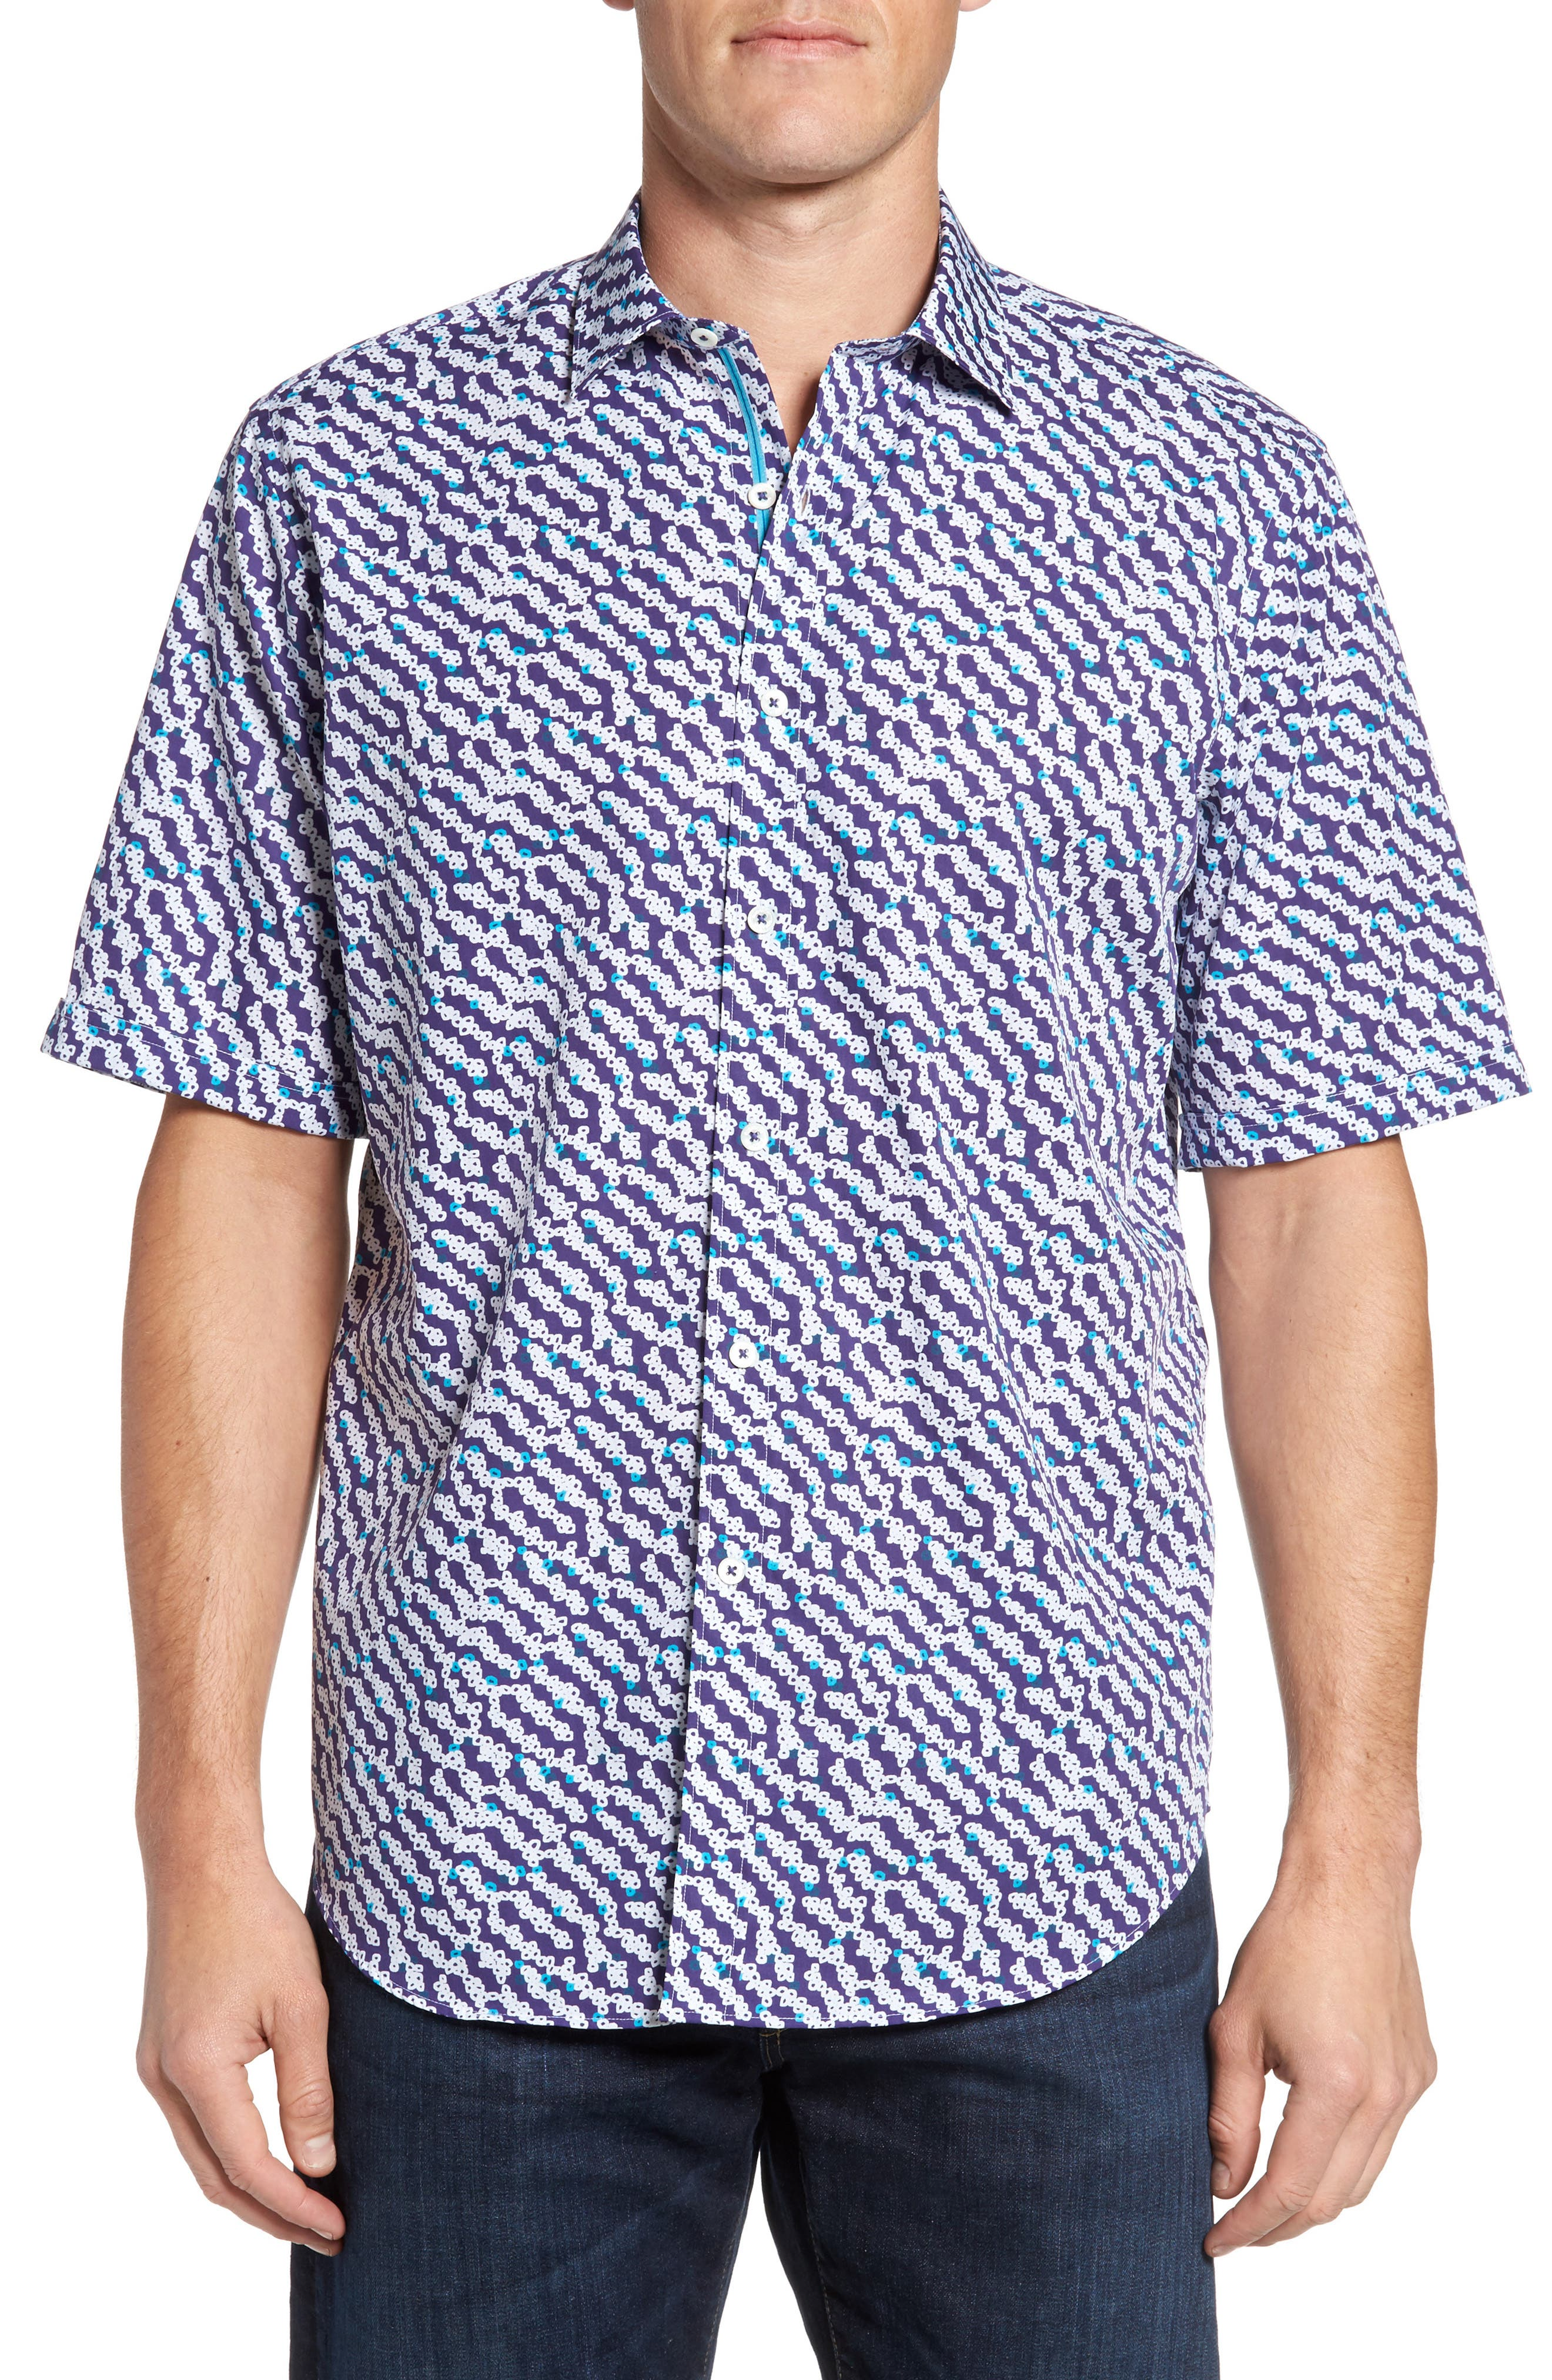 Main Image - Bugatchi Classic Fit Print Short Sleeve Sport Shirt